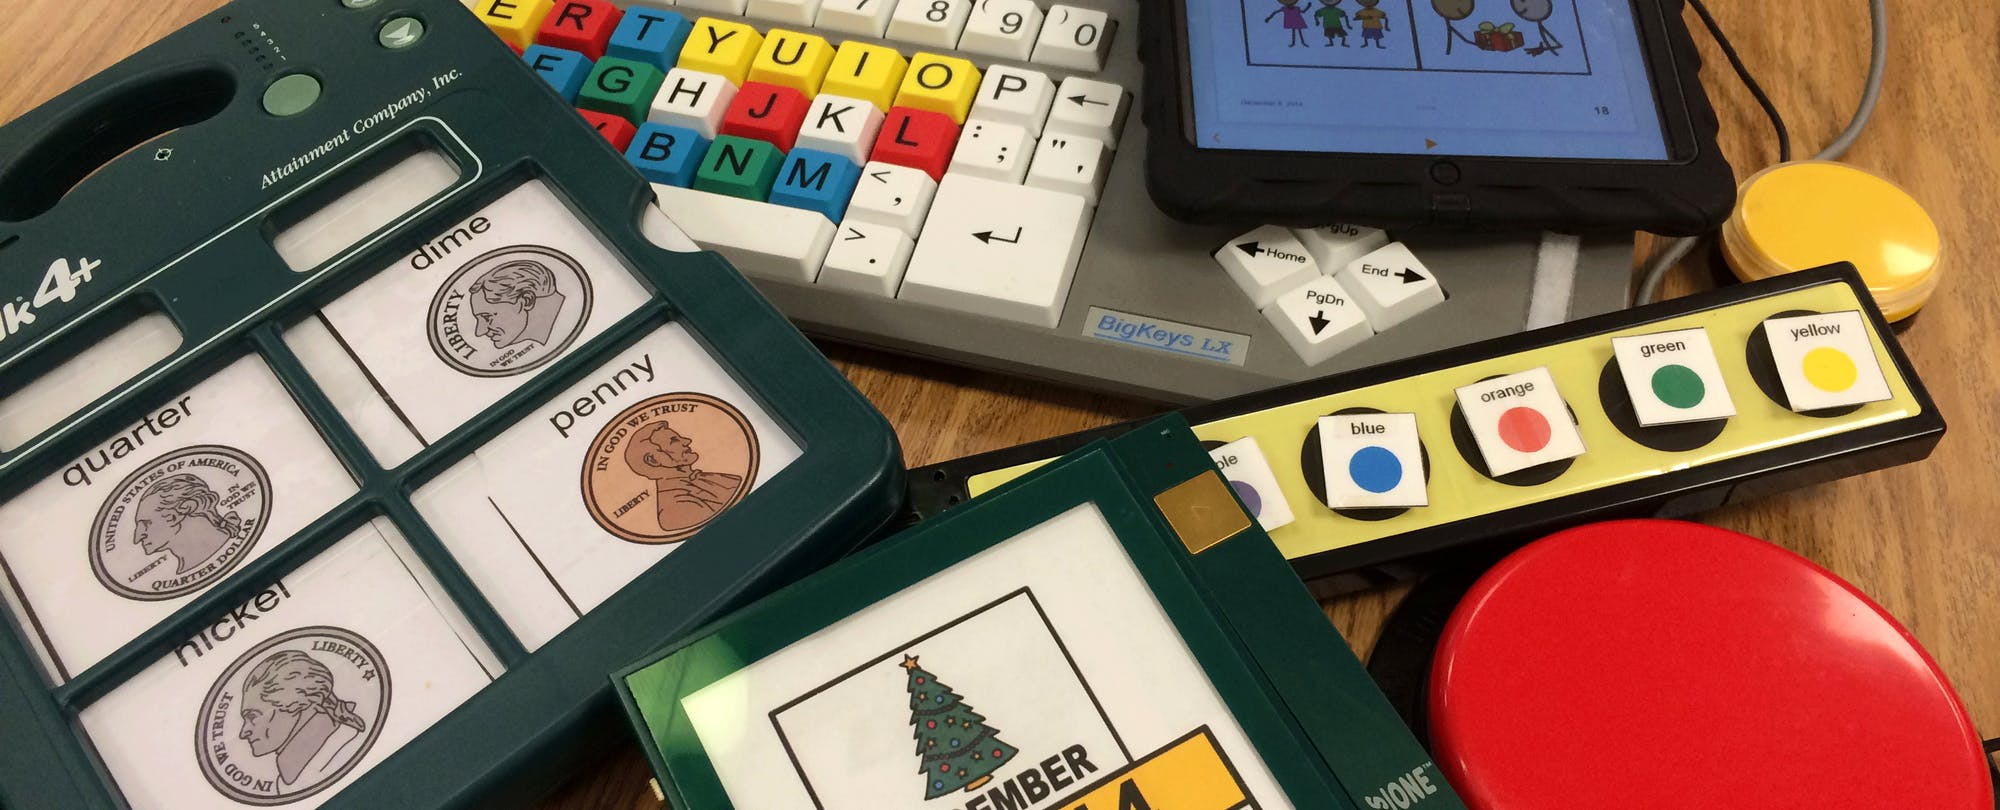 Inside the Special Education Classroom: How Tech Can Help Students With Special Needs